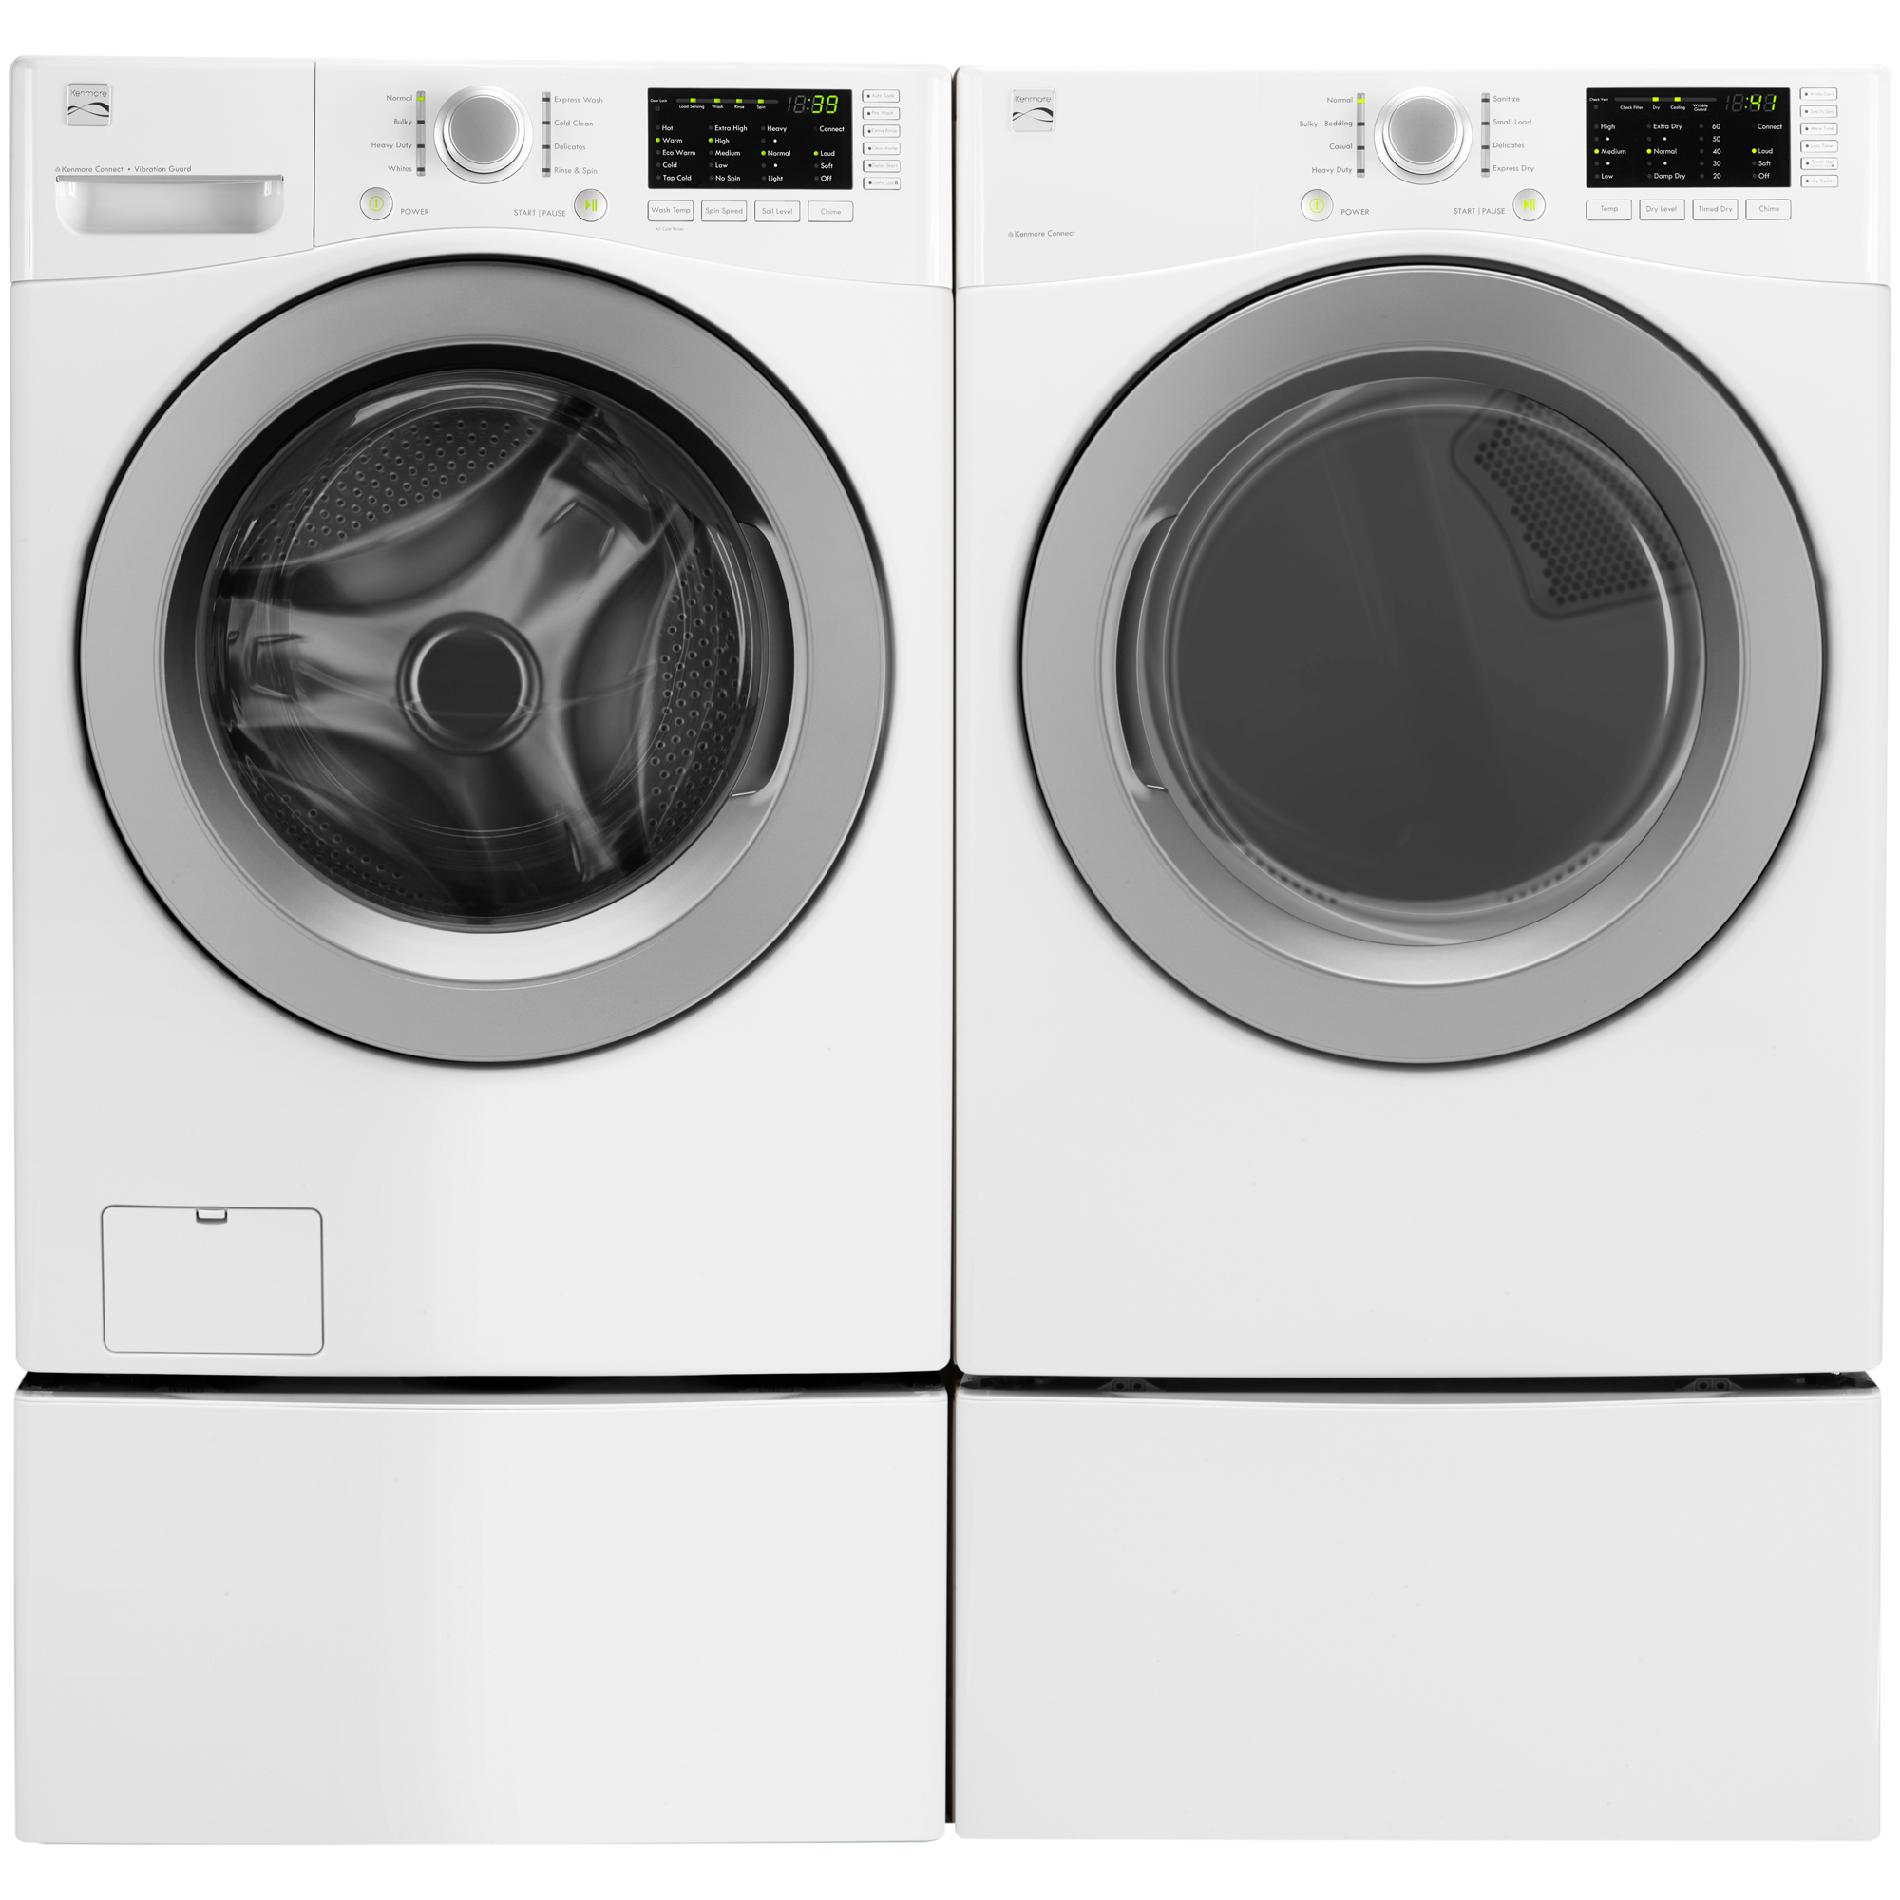 4.5 cu. ft. Front-Load Washer & 7.3 cu. ft. Gas or Electric Dryer w/ Sensor Dry